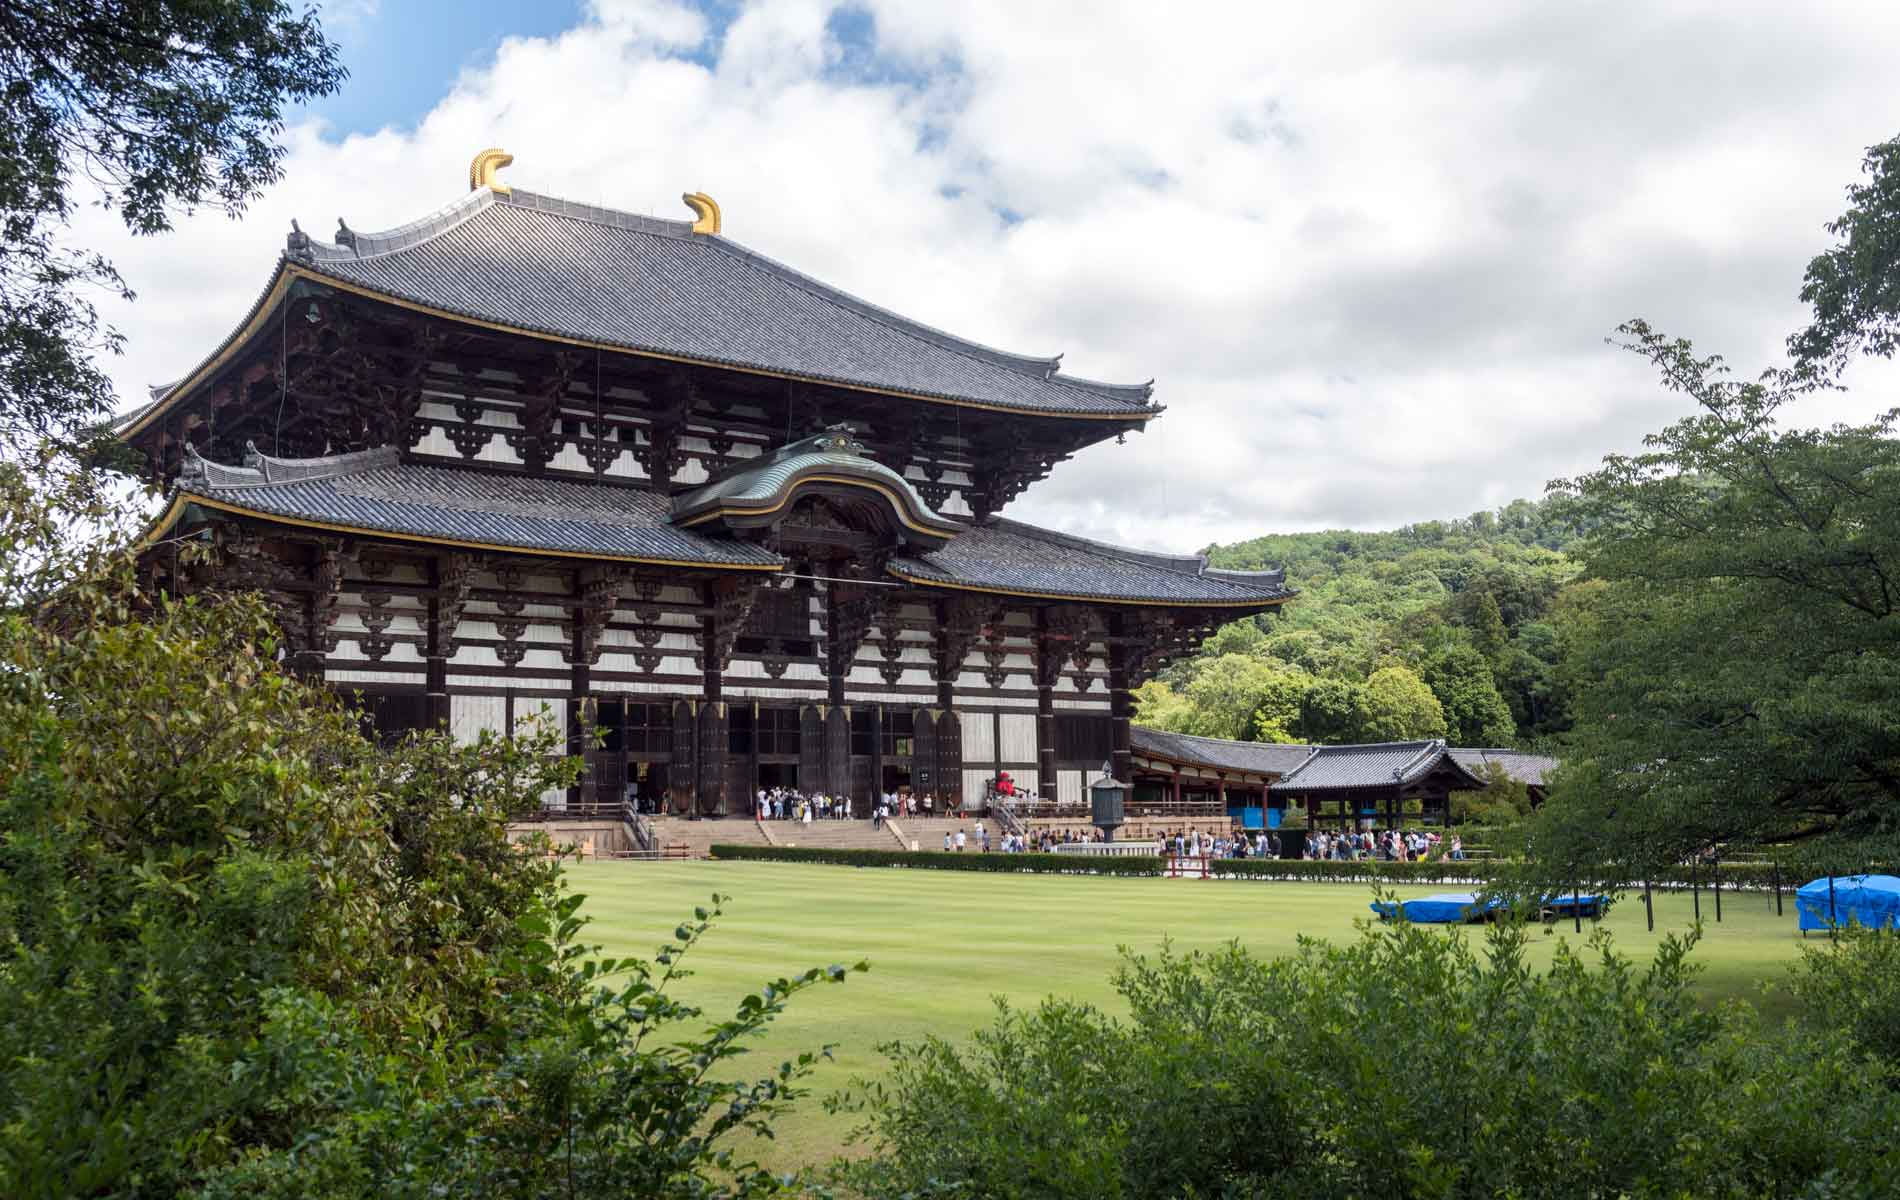 Todaiji's main hall, the Daibutsuden is the World's largest wooden building in Nara, Japan